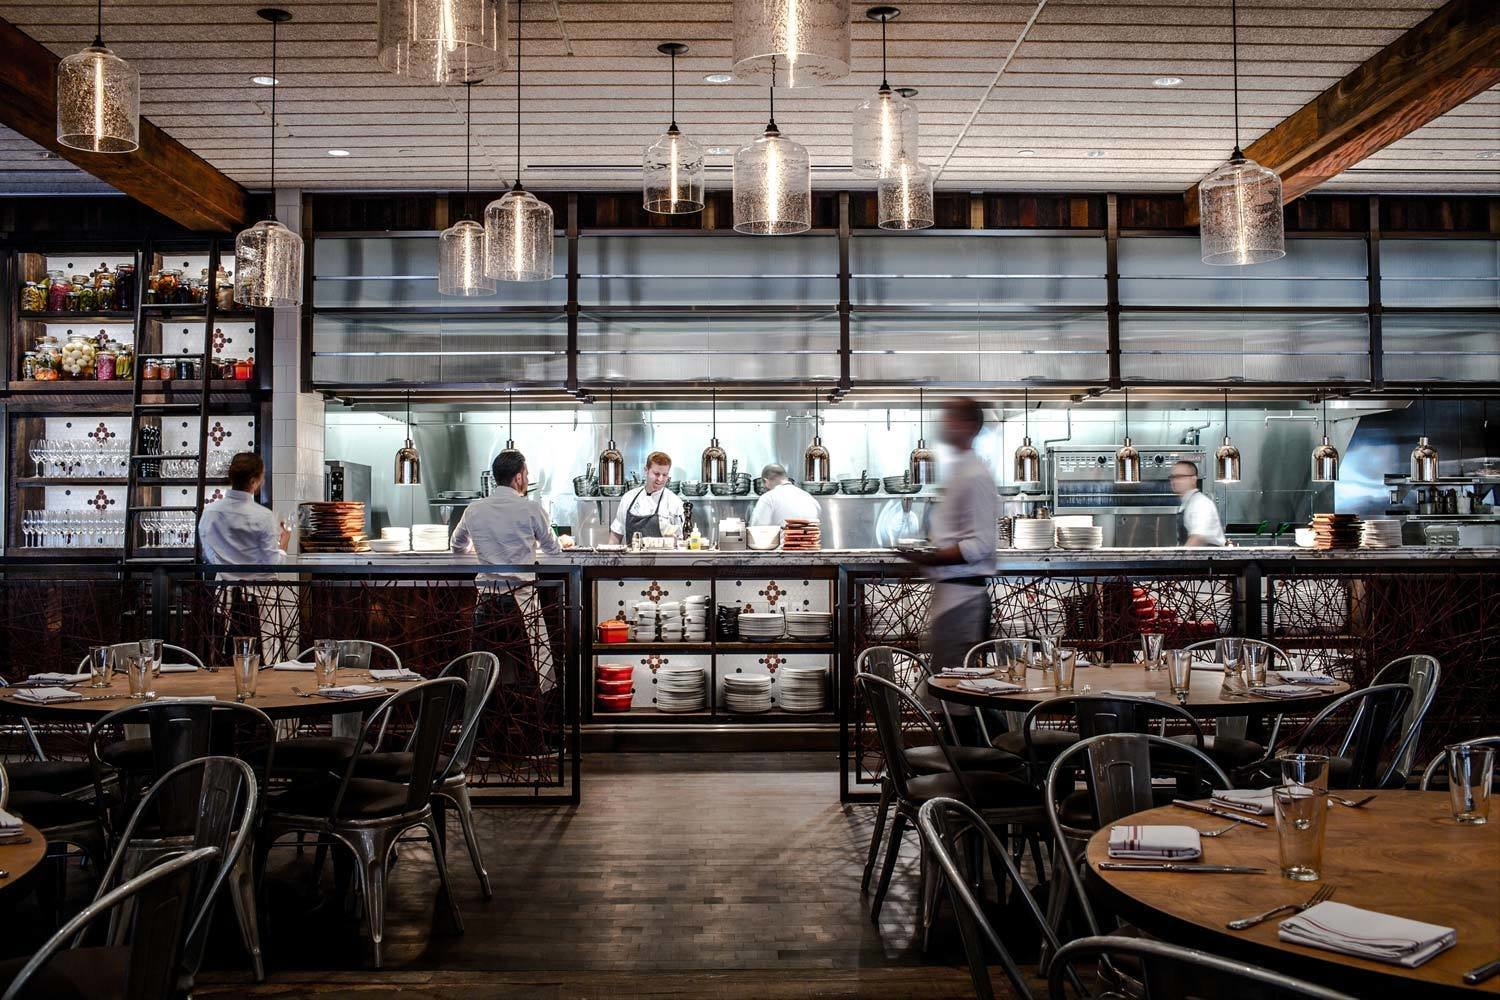 Photo 3 of 4 in Modern Restaurant Pendant Lights Add to Charm of Popular Dallas Eatery